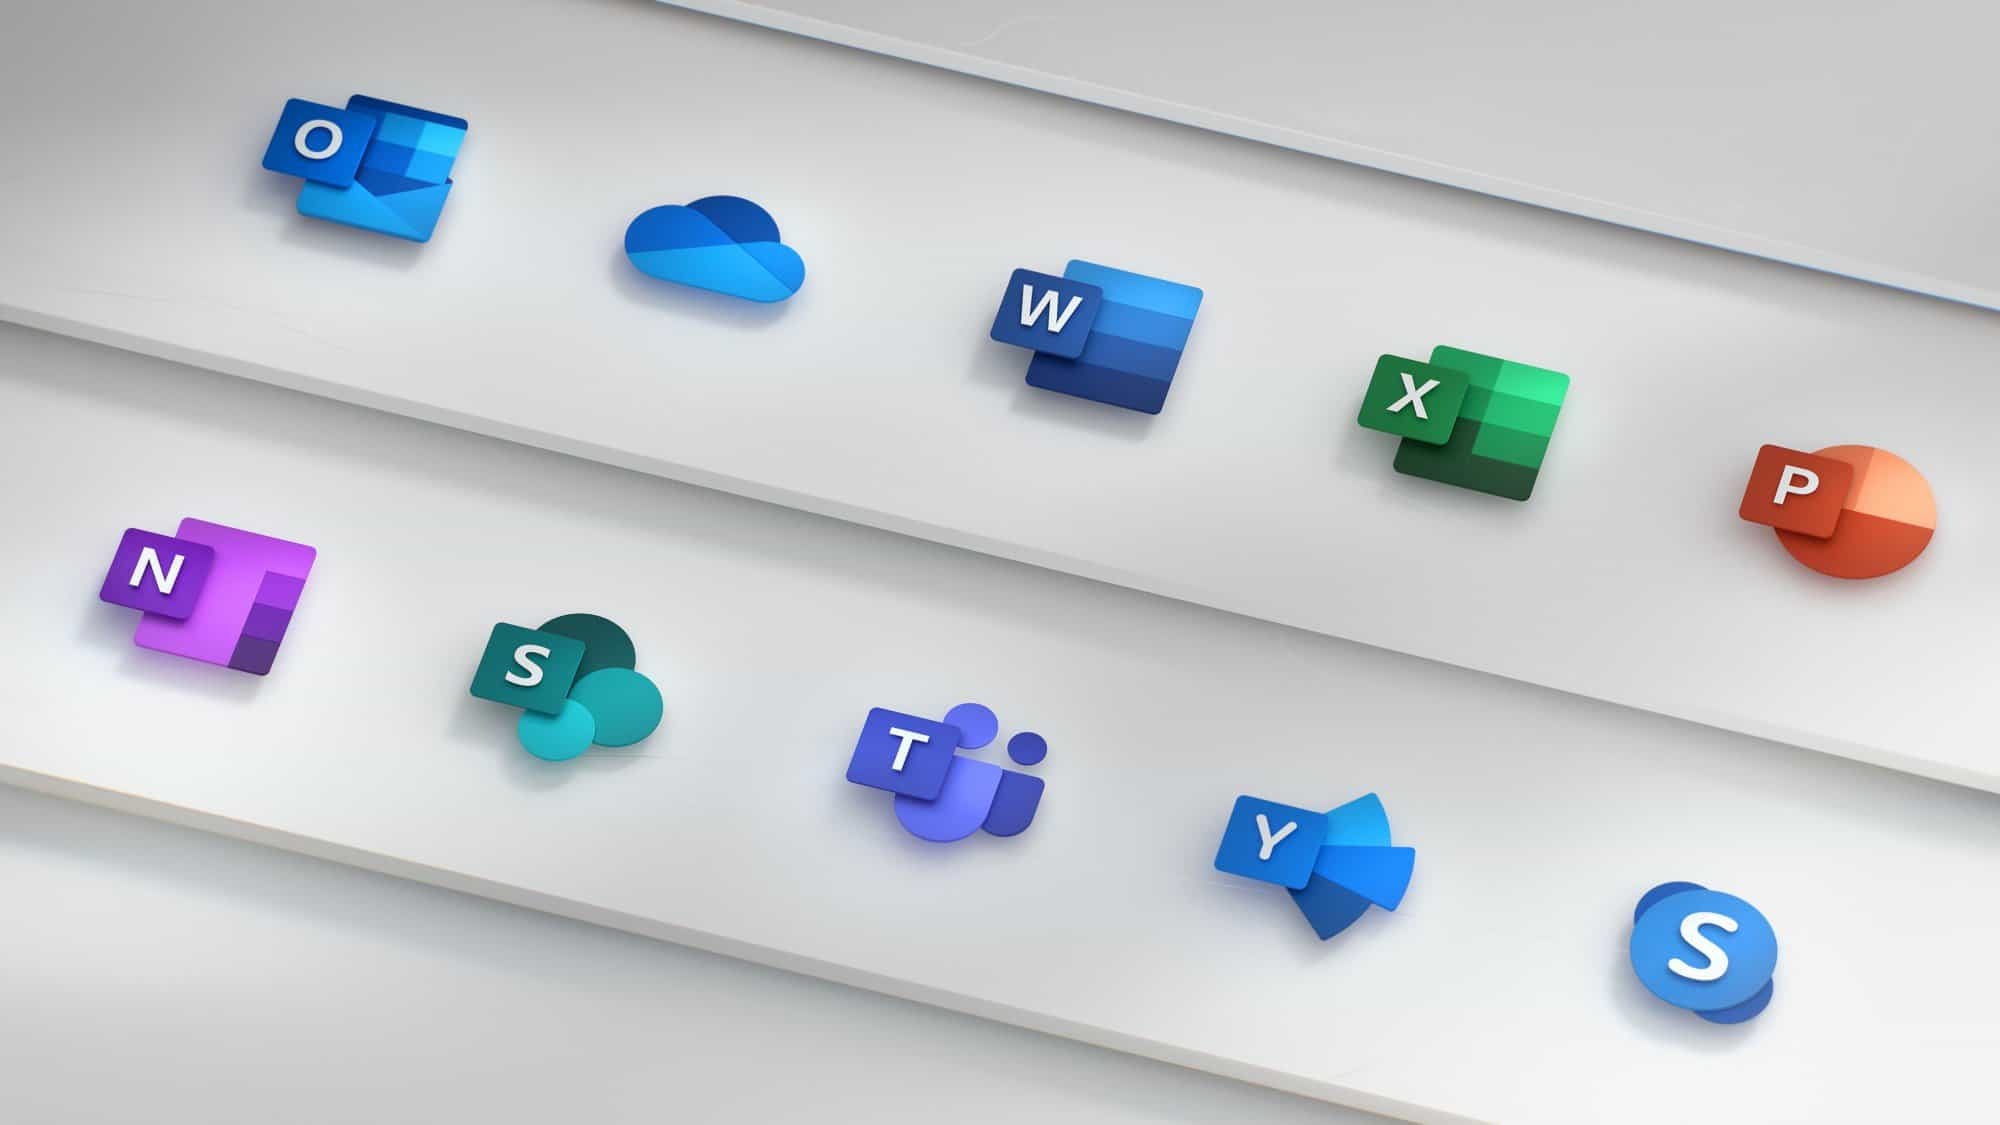 Microsoft Office Apps Get New Icons